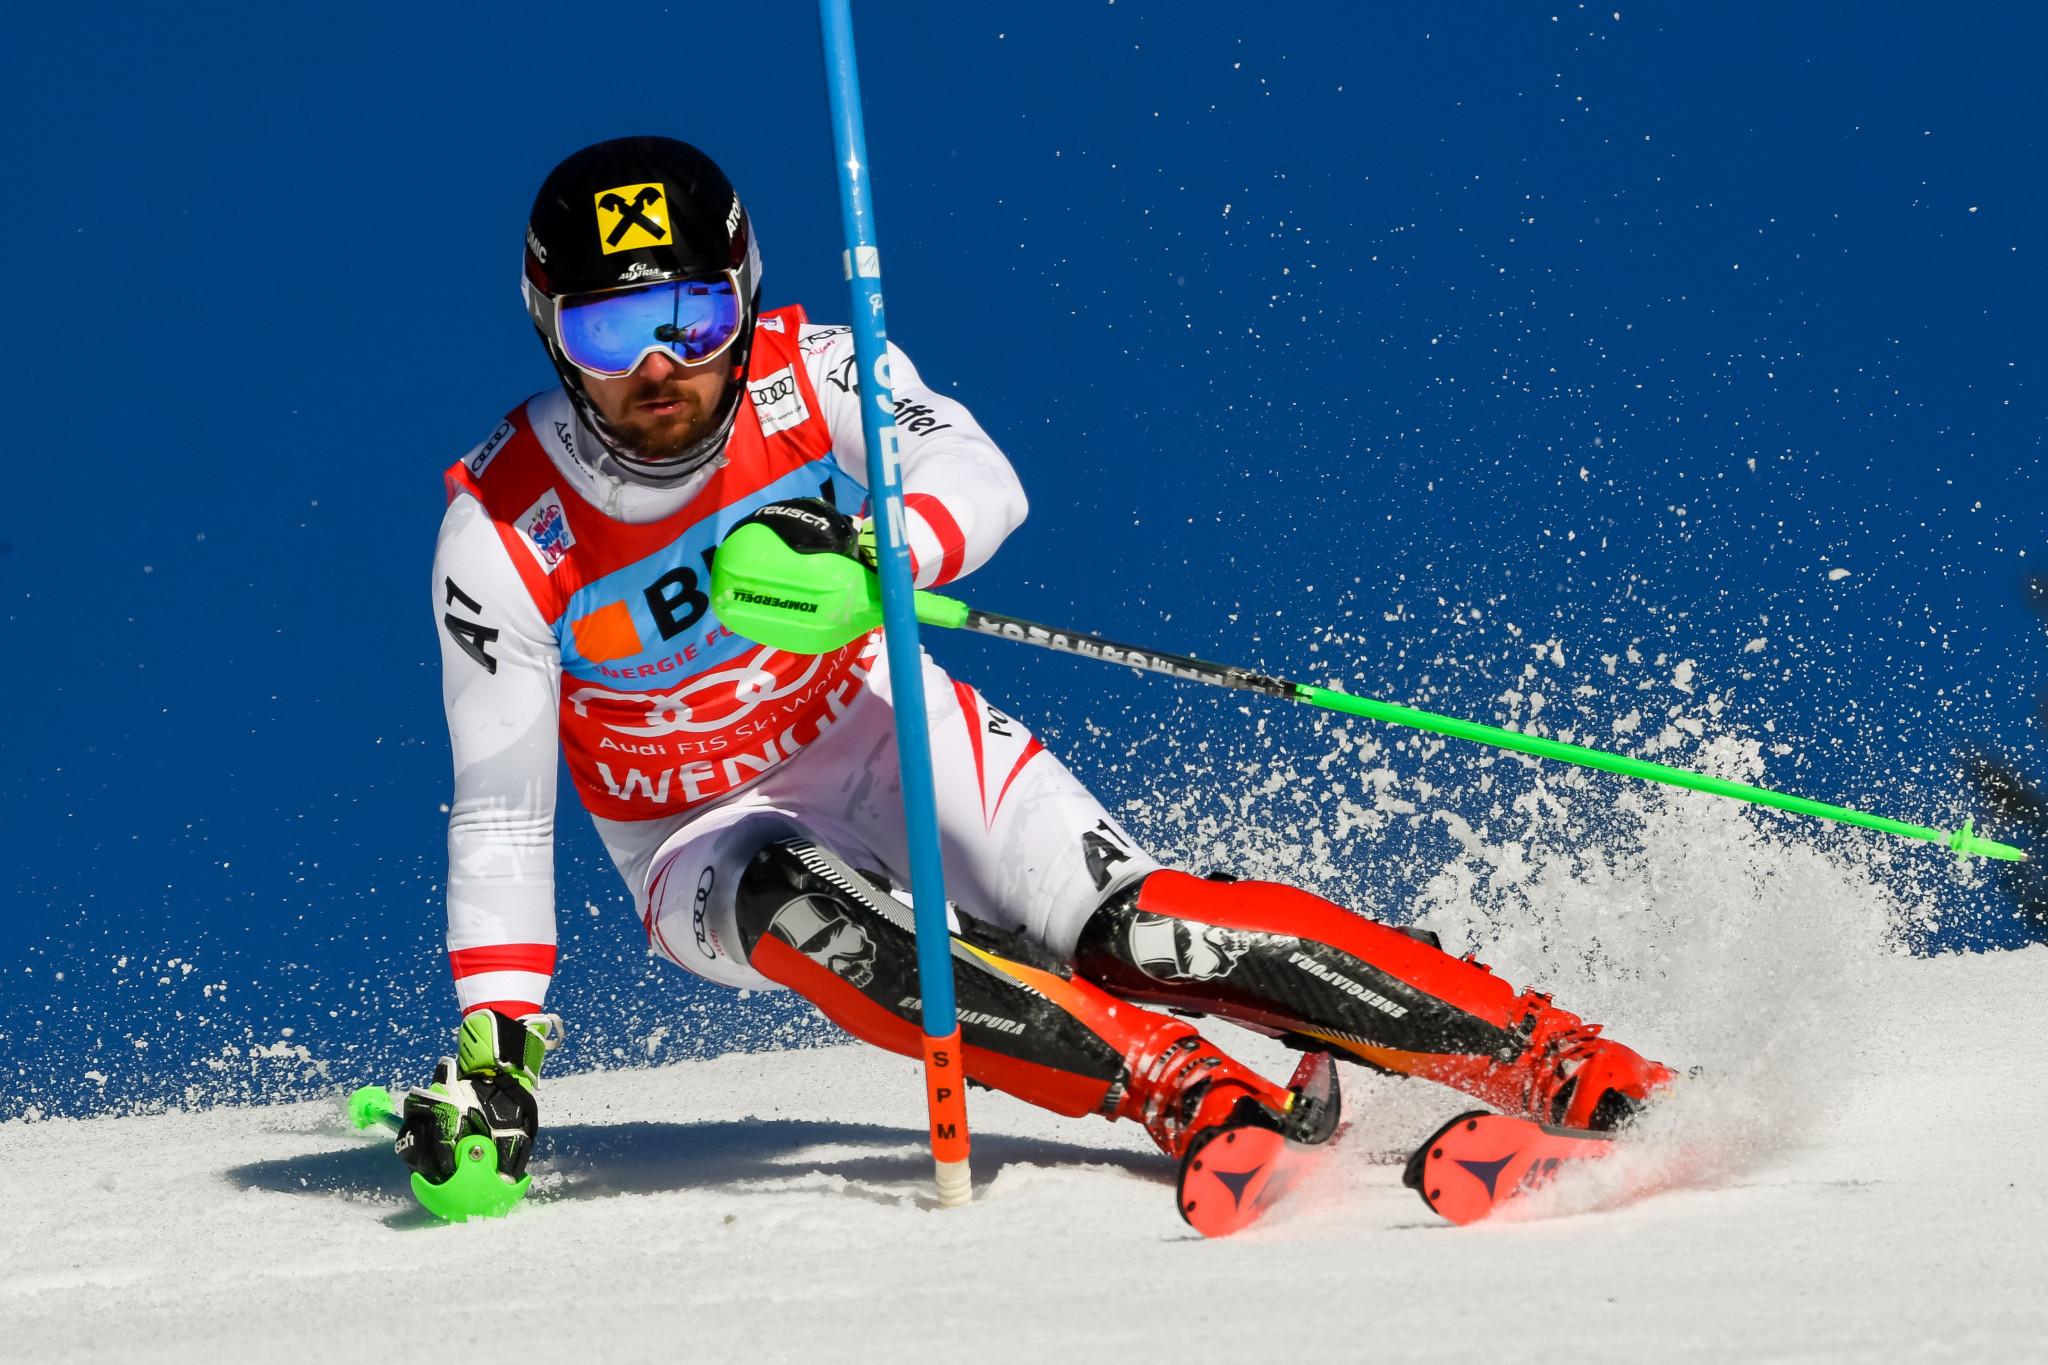 Hirscher stretches slalom winning streak as Italy sweep women's podium at Alpine Skiing World Cup